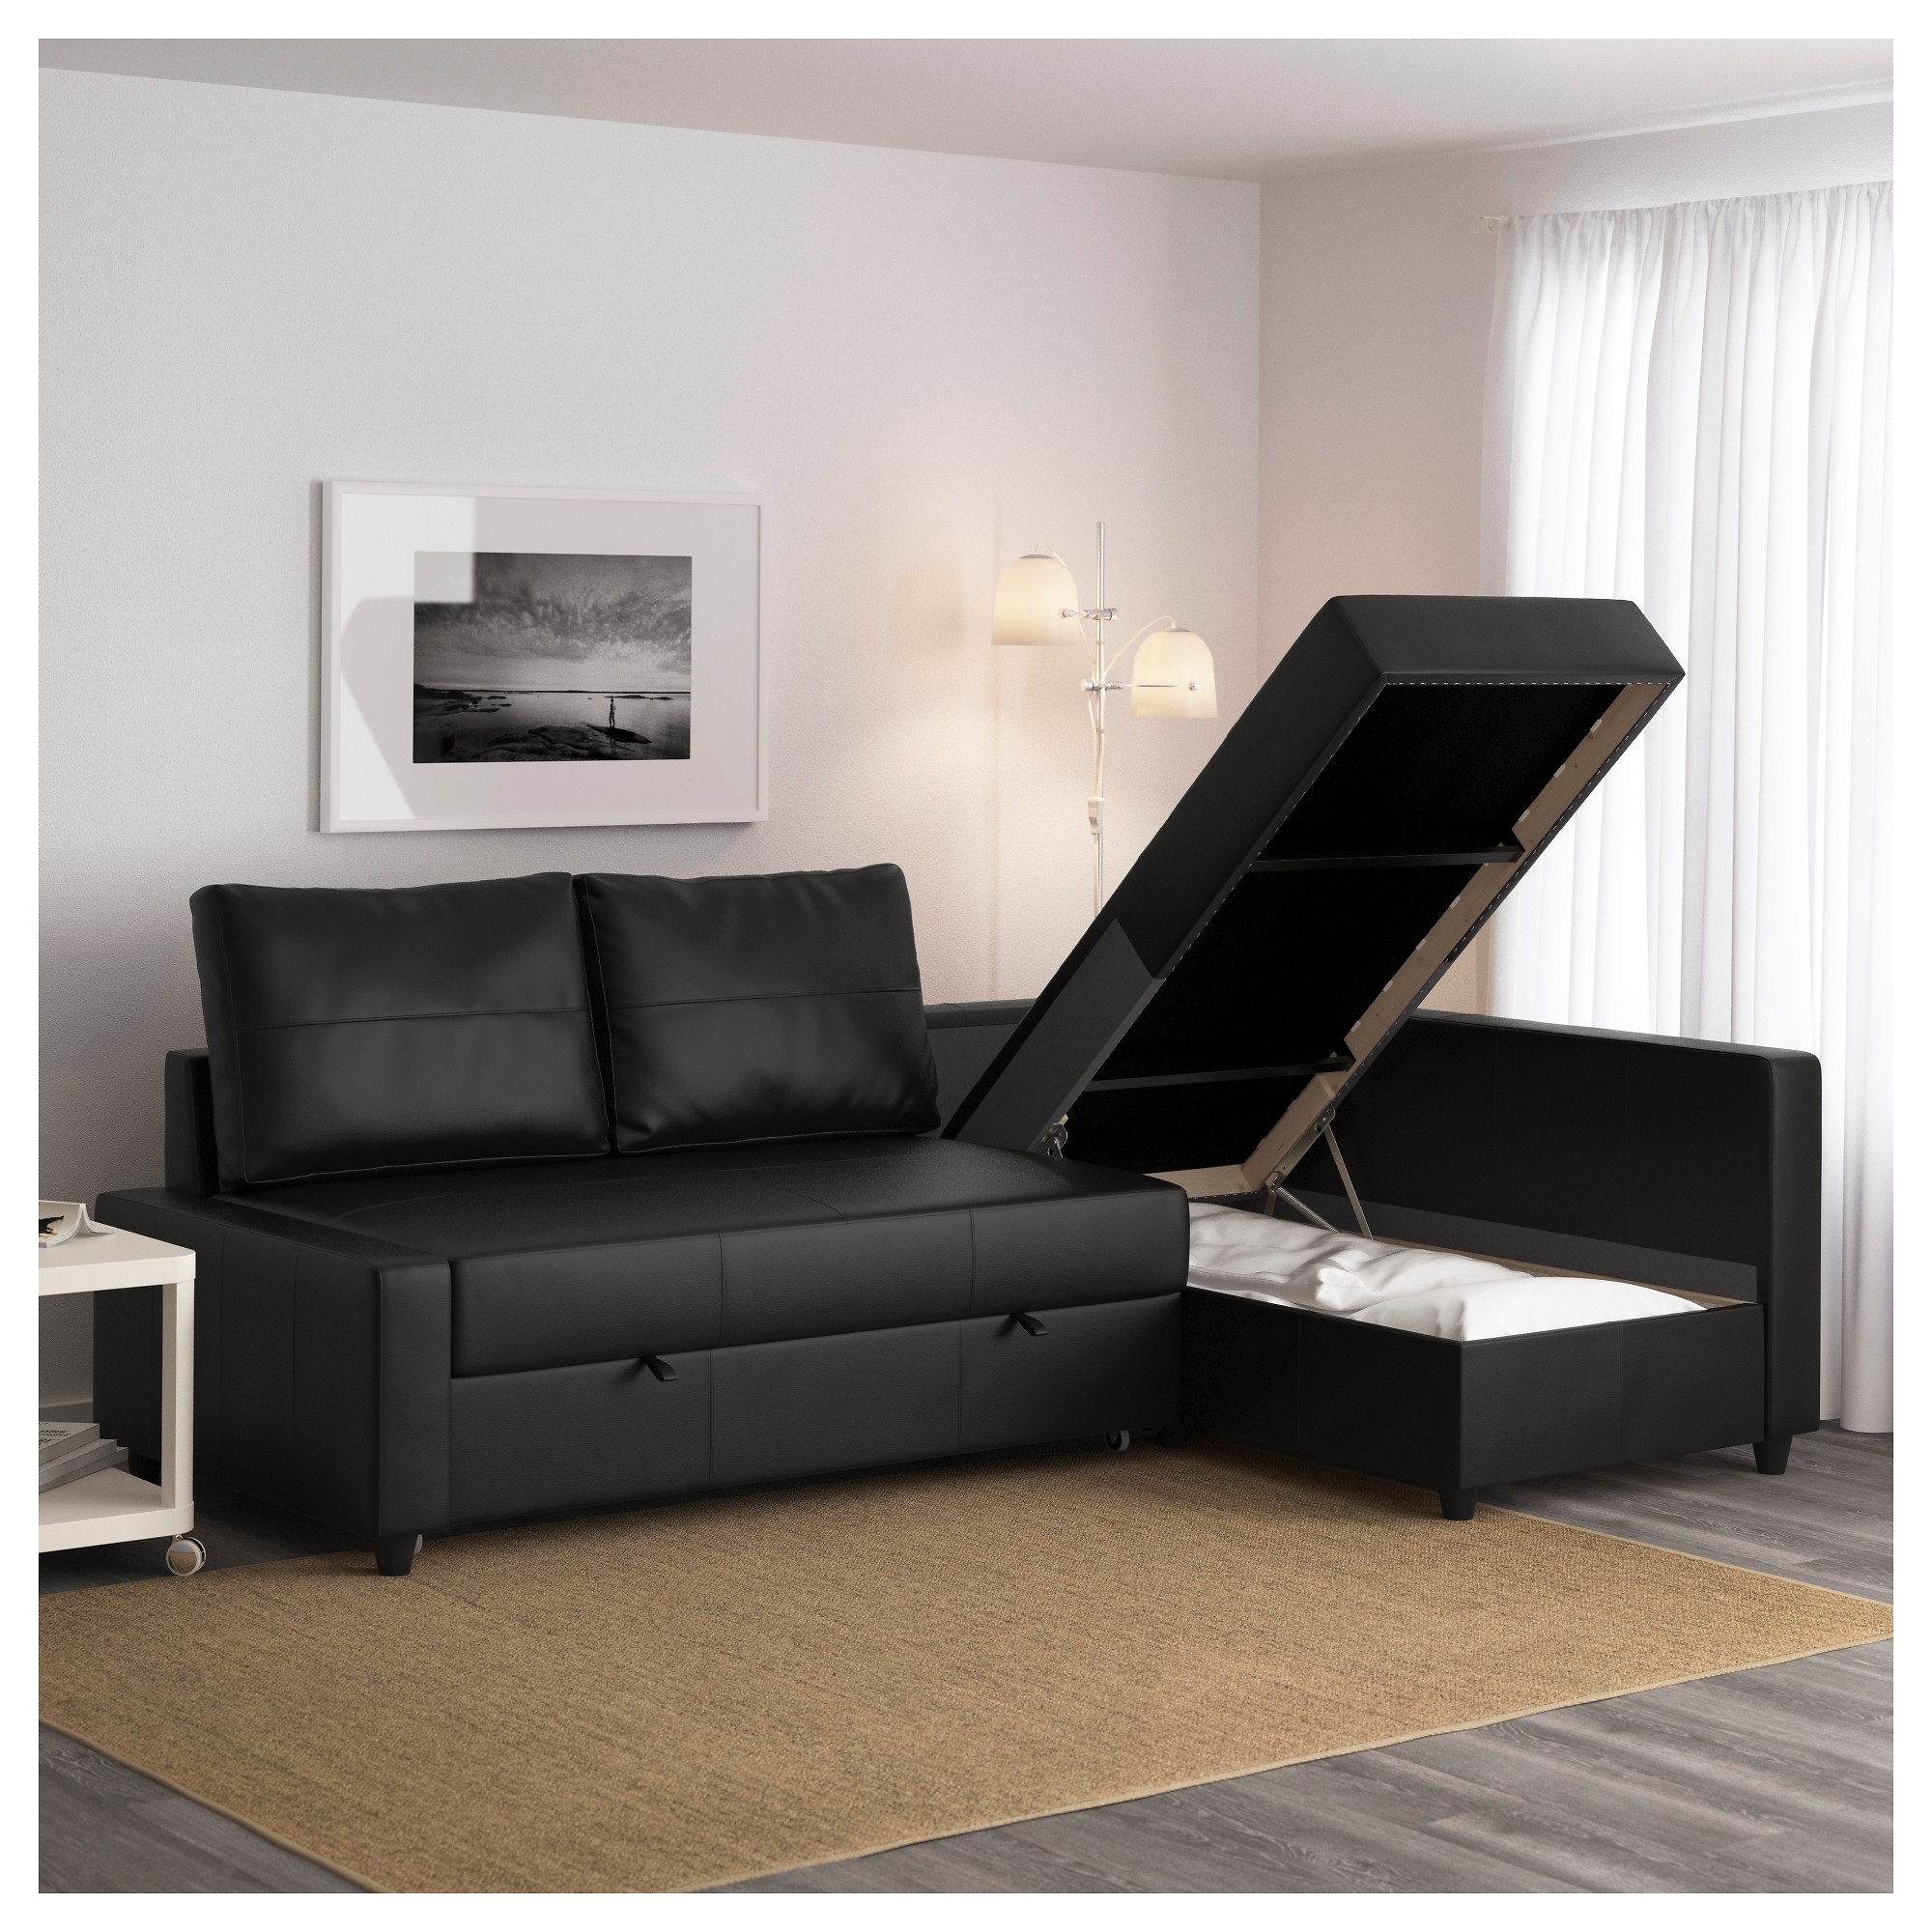 2019 Popular Ikea Chaise Sofas